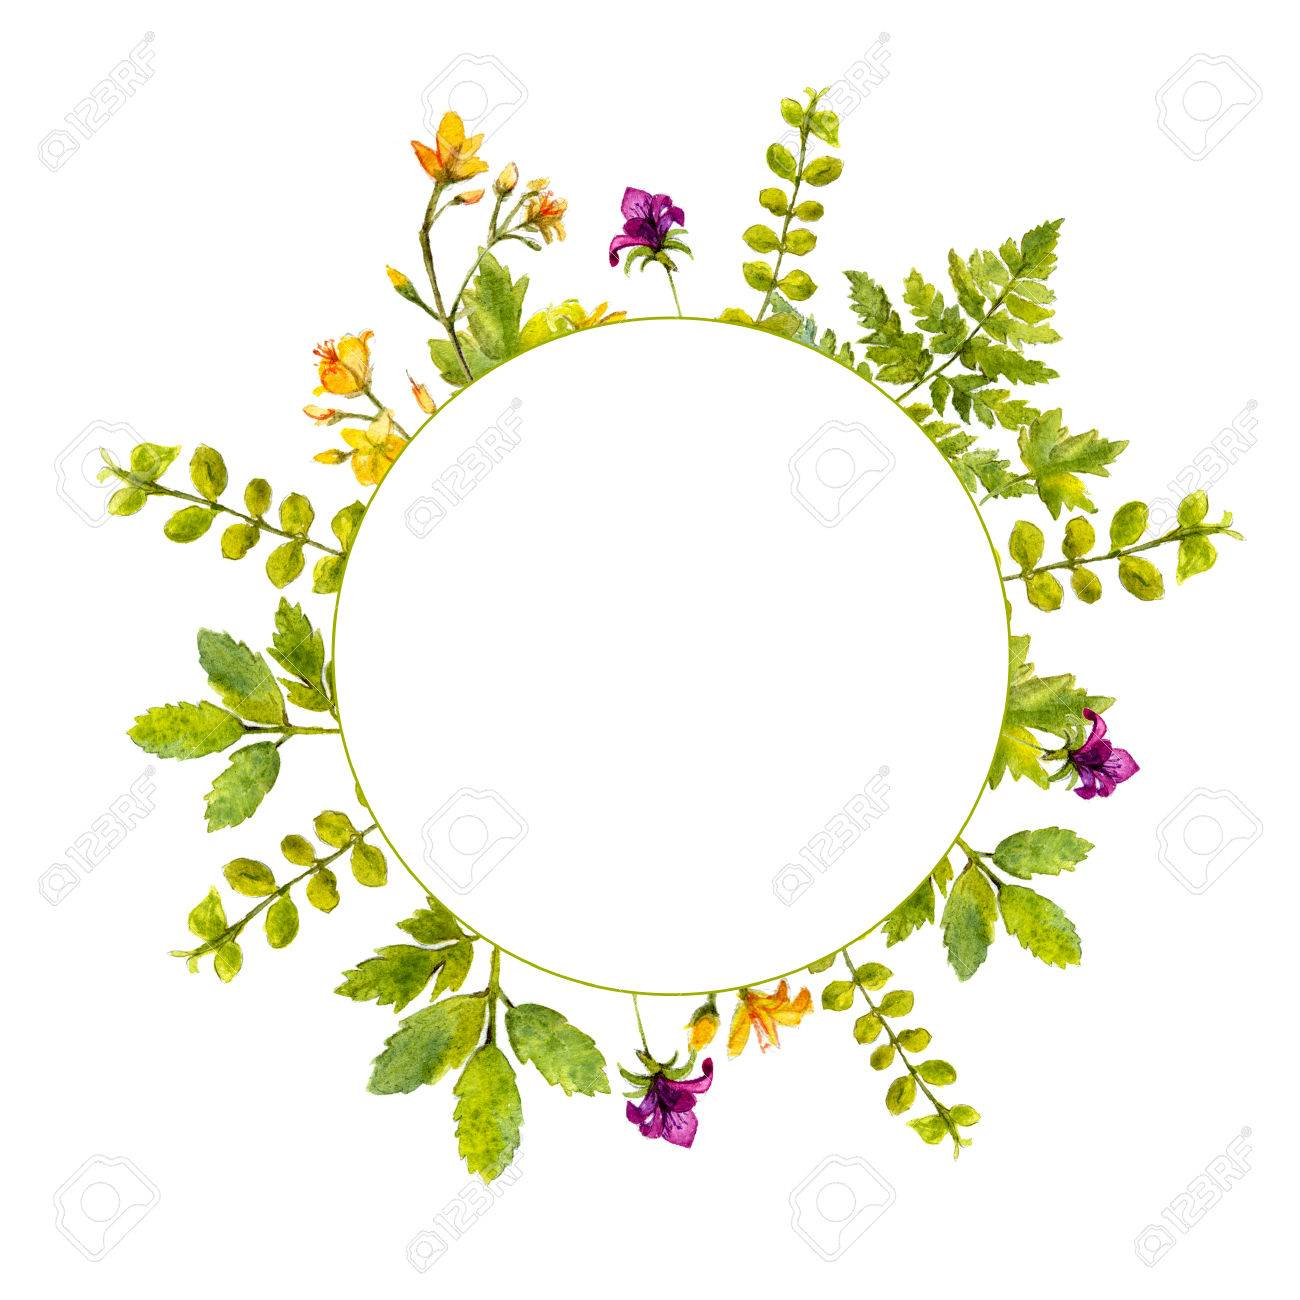 Circle Frame With Painted Watercolor Green Plants And Wild Flowers ...